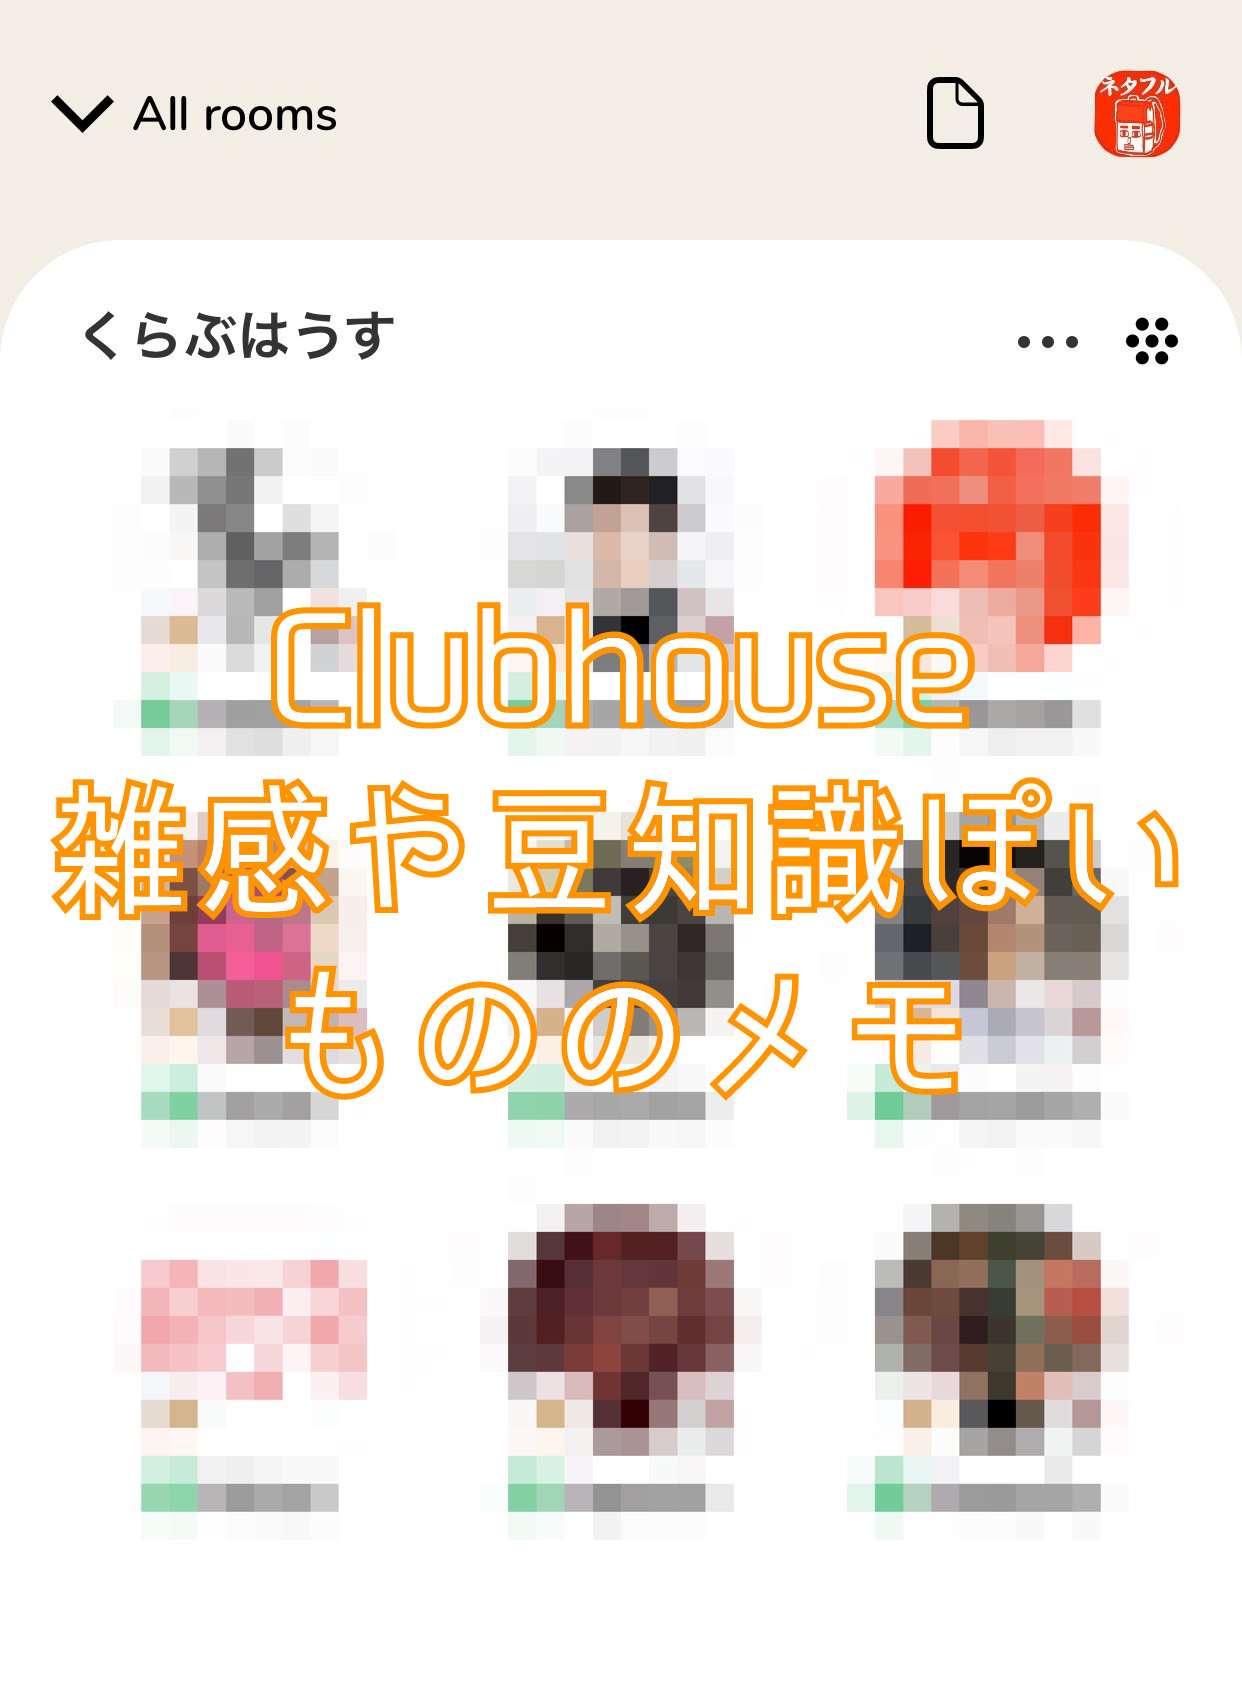 「Clubhouse」雑感や豆知識ぽいもののメモ 202101